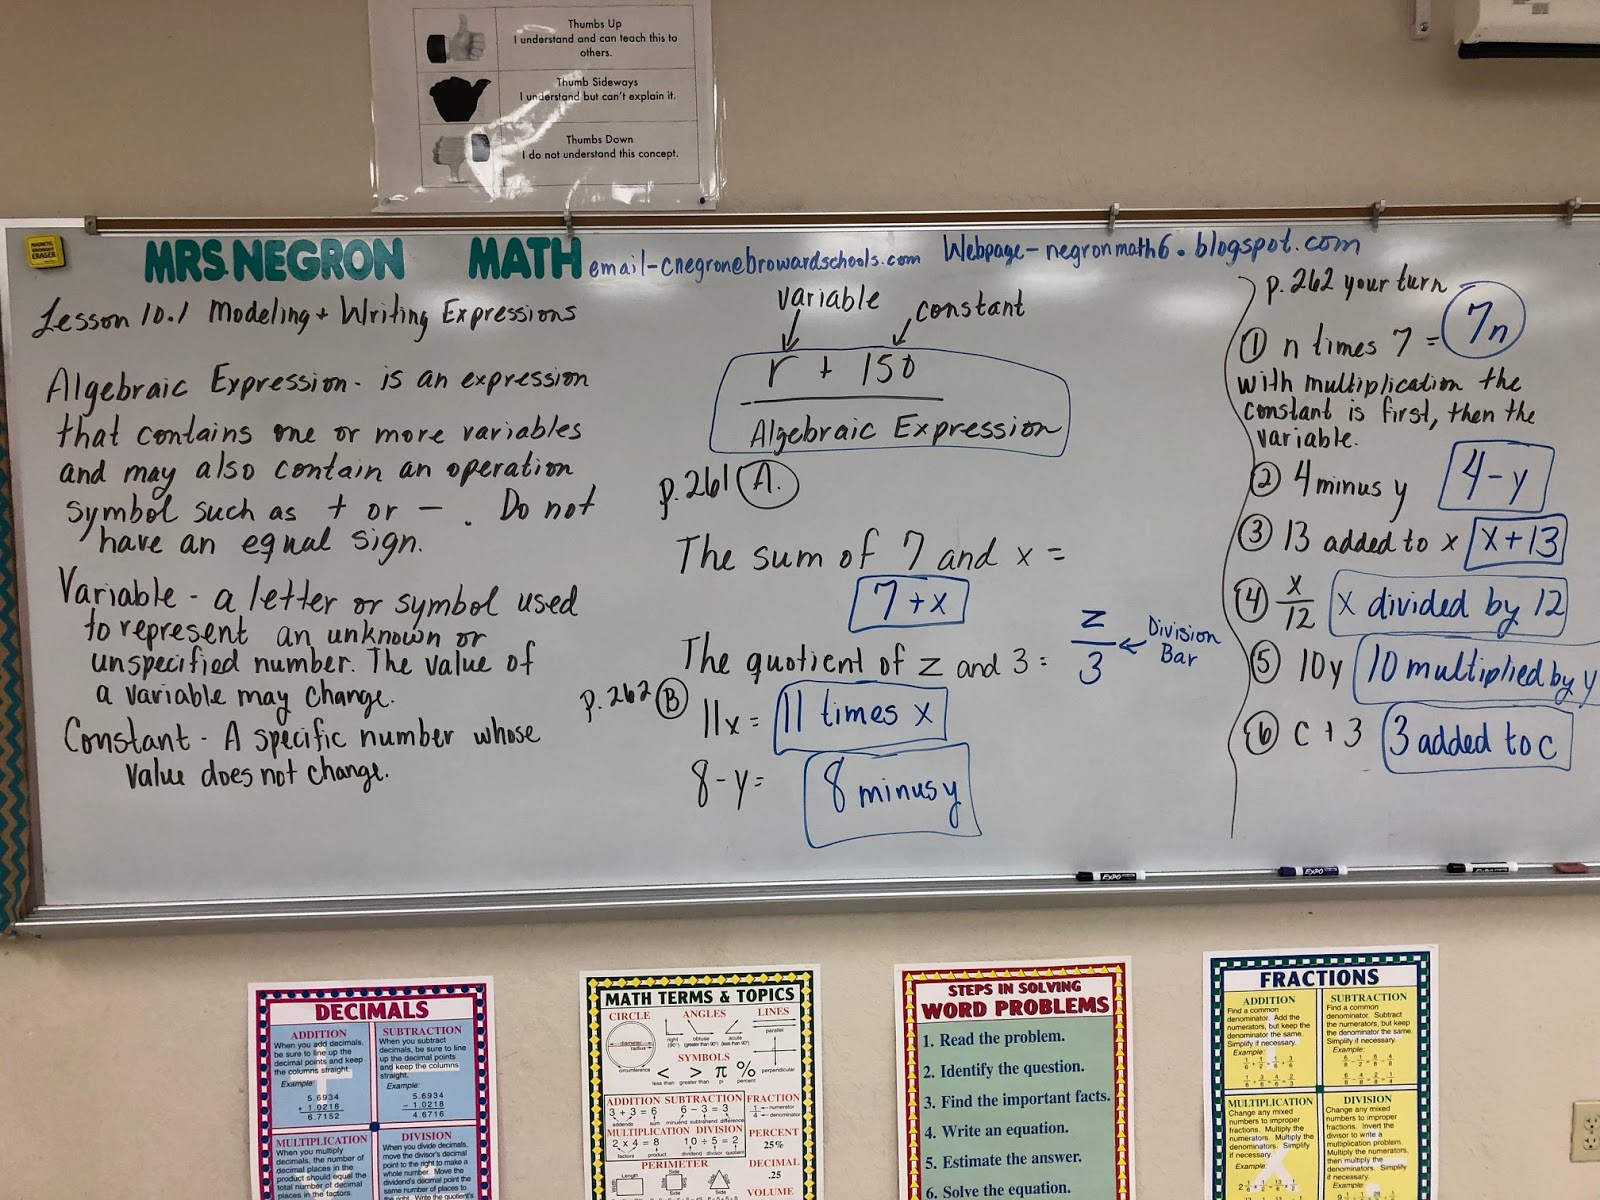 Mrs Negron 6th Grade Math Class Lesson 10 1 Modeling And